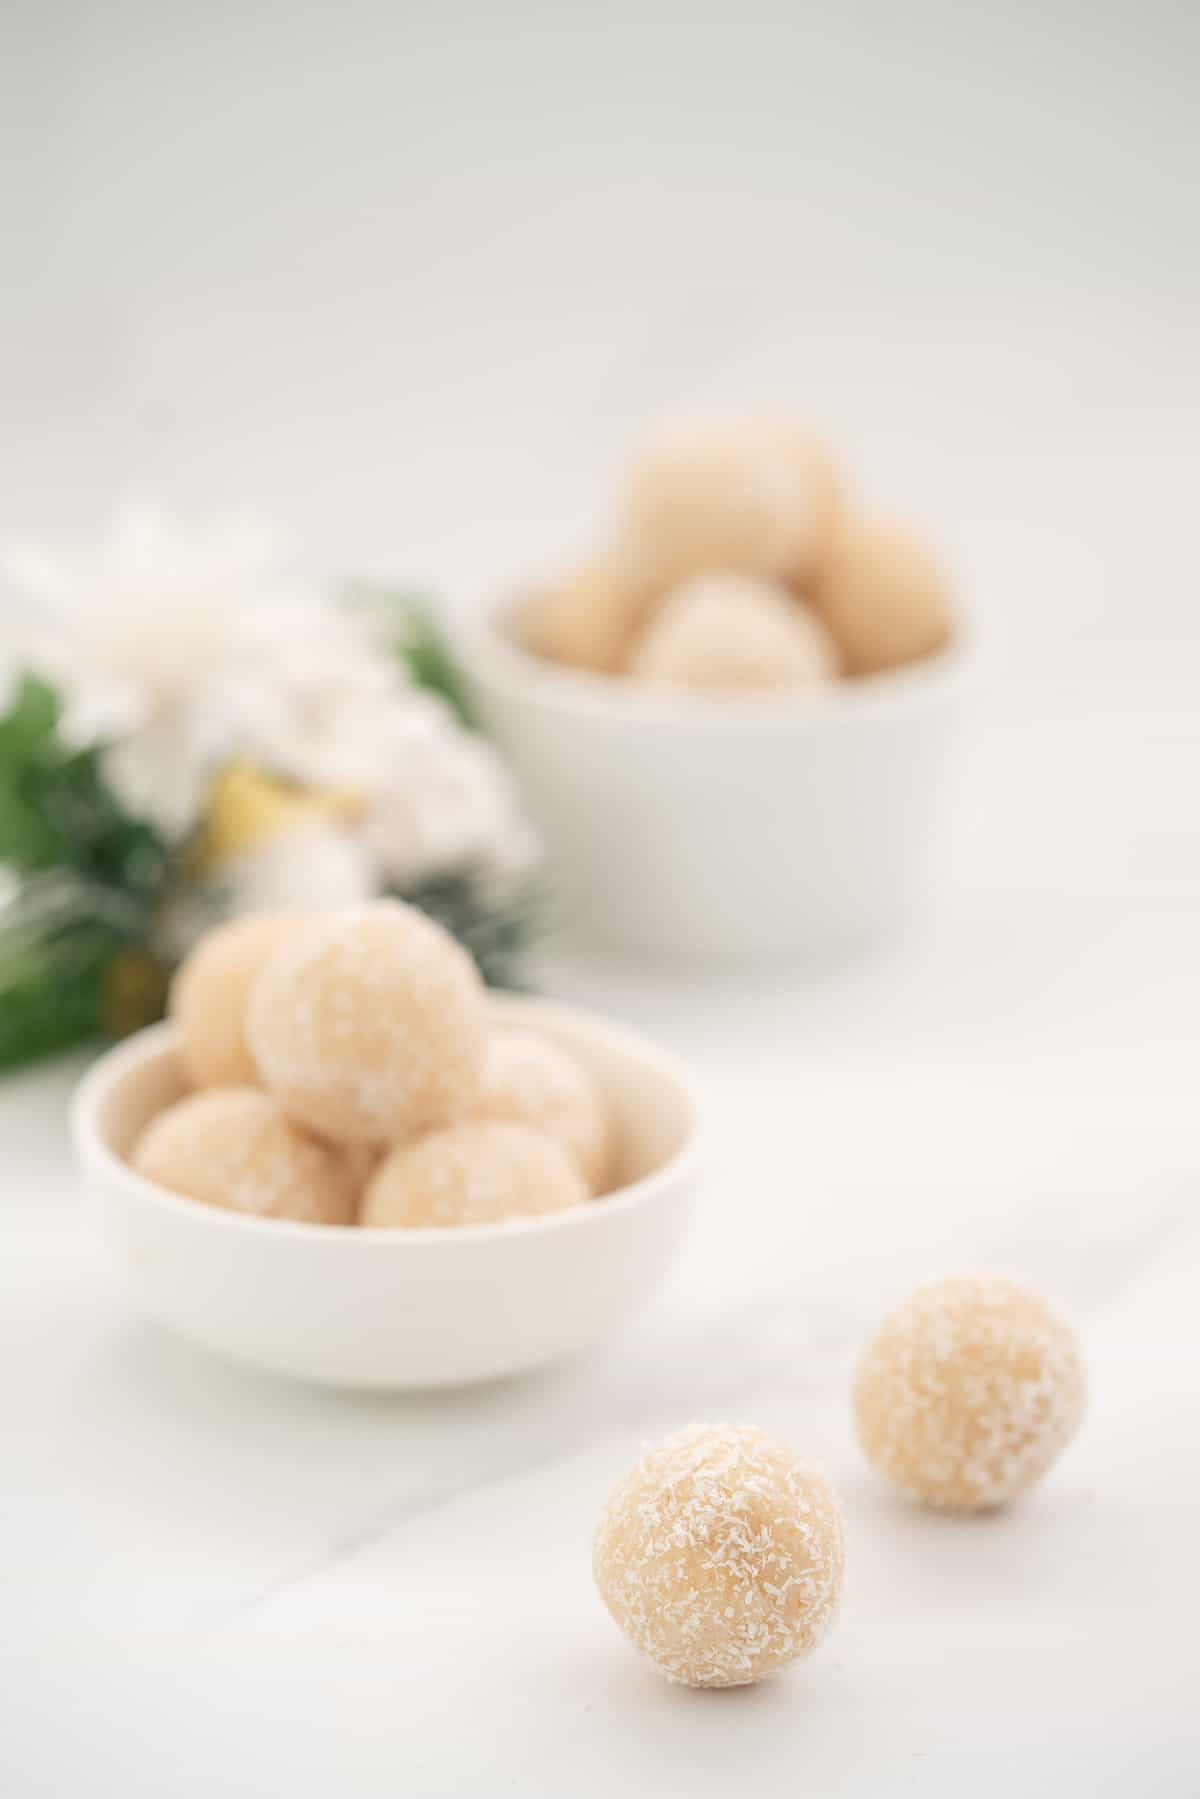 Coconut balls on a white marble bench top with christmas decorations in the background.